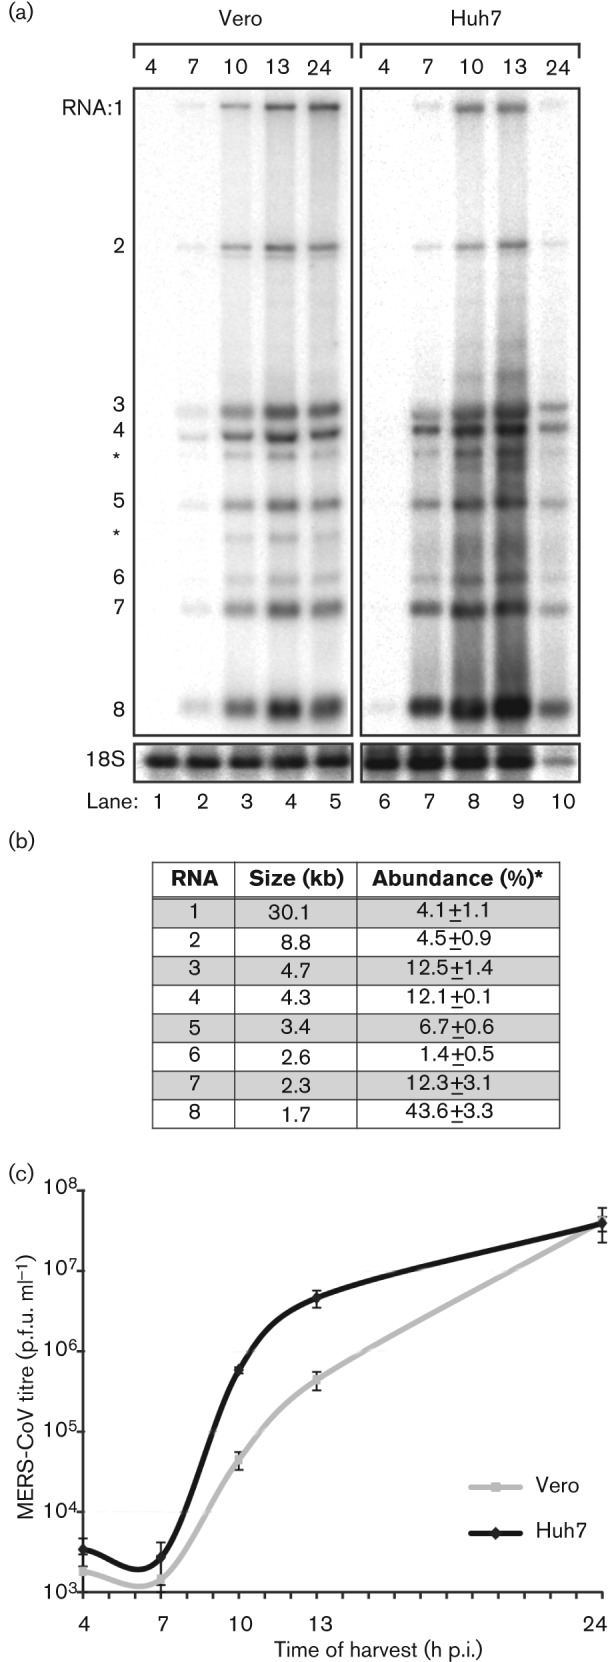 Kinetics of MERS-CoV replication in Vero and Huh7 cells. Vero and Huh7 cells were infected with MERS-CoV (m.o.i. of 5). (a) Hybridization analysis of viral mRNAs isolated from MERS-CoV-infected cells using an oligonucleotide recognizing the viral genome and all sg mRNAs. Additional minor bands of ~3 and ~4 kb were observed (*) and may represent additional viral mRNA species that remain to be studied in more detail. However, the corresponding positions in the ORF4a/b and ORF5 coding regions do not contain a canonical core TRS sequence (AACGAA; van Boheemen et al. , 2012 ) that might provide a direct explanation for their synthesis. (b) Analysis of the relative molarities of viral genome and each of the sg mRNAs (% of total viral mRNA). mRNA sizes were calculated on the basis of the TRS positions in the viral genome sequence ( van Boheemen et al. , 2012 ). Phosphorimager quantification was performed on the gel lanes with the RNA samples isolated from Vero cells at 10, 13 and 24 h p.i. ( Fig. 1a ; lanes 3–5, respectively; mean± sd ). (c) Release of infectious MERS-CoV progeny into the medium of infected Vero or Huh7 cells at the indicated time points, as determined by plaque assay (mean± sd ; n = 4).